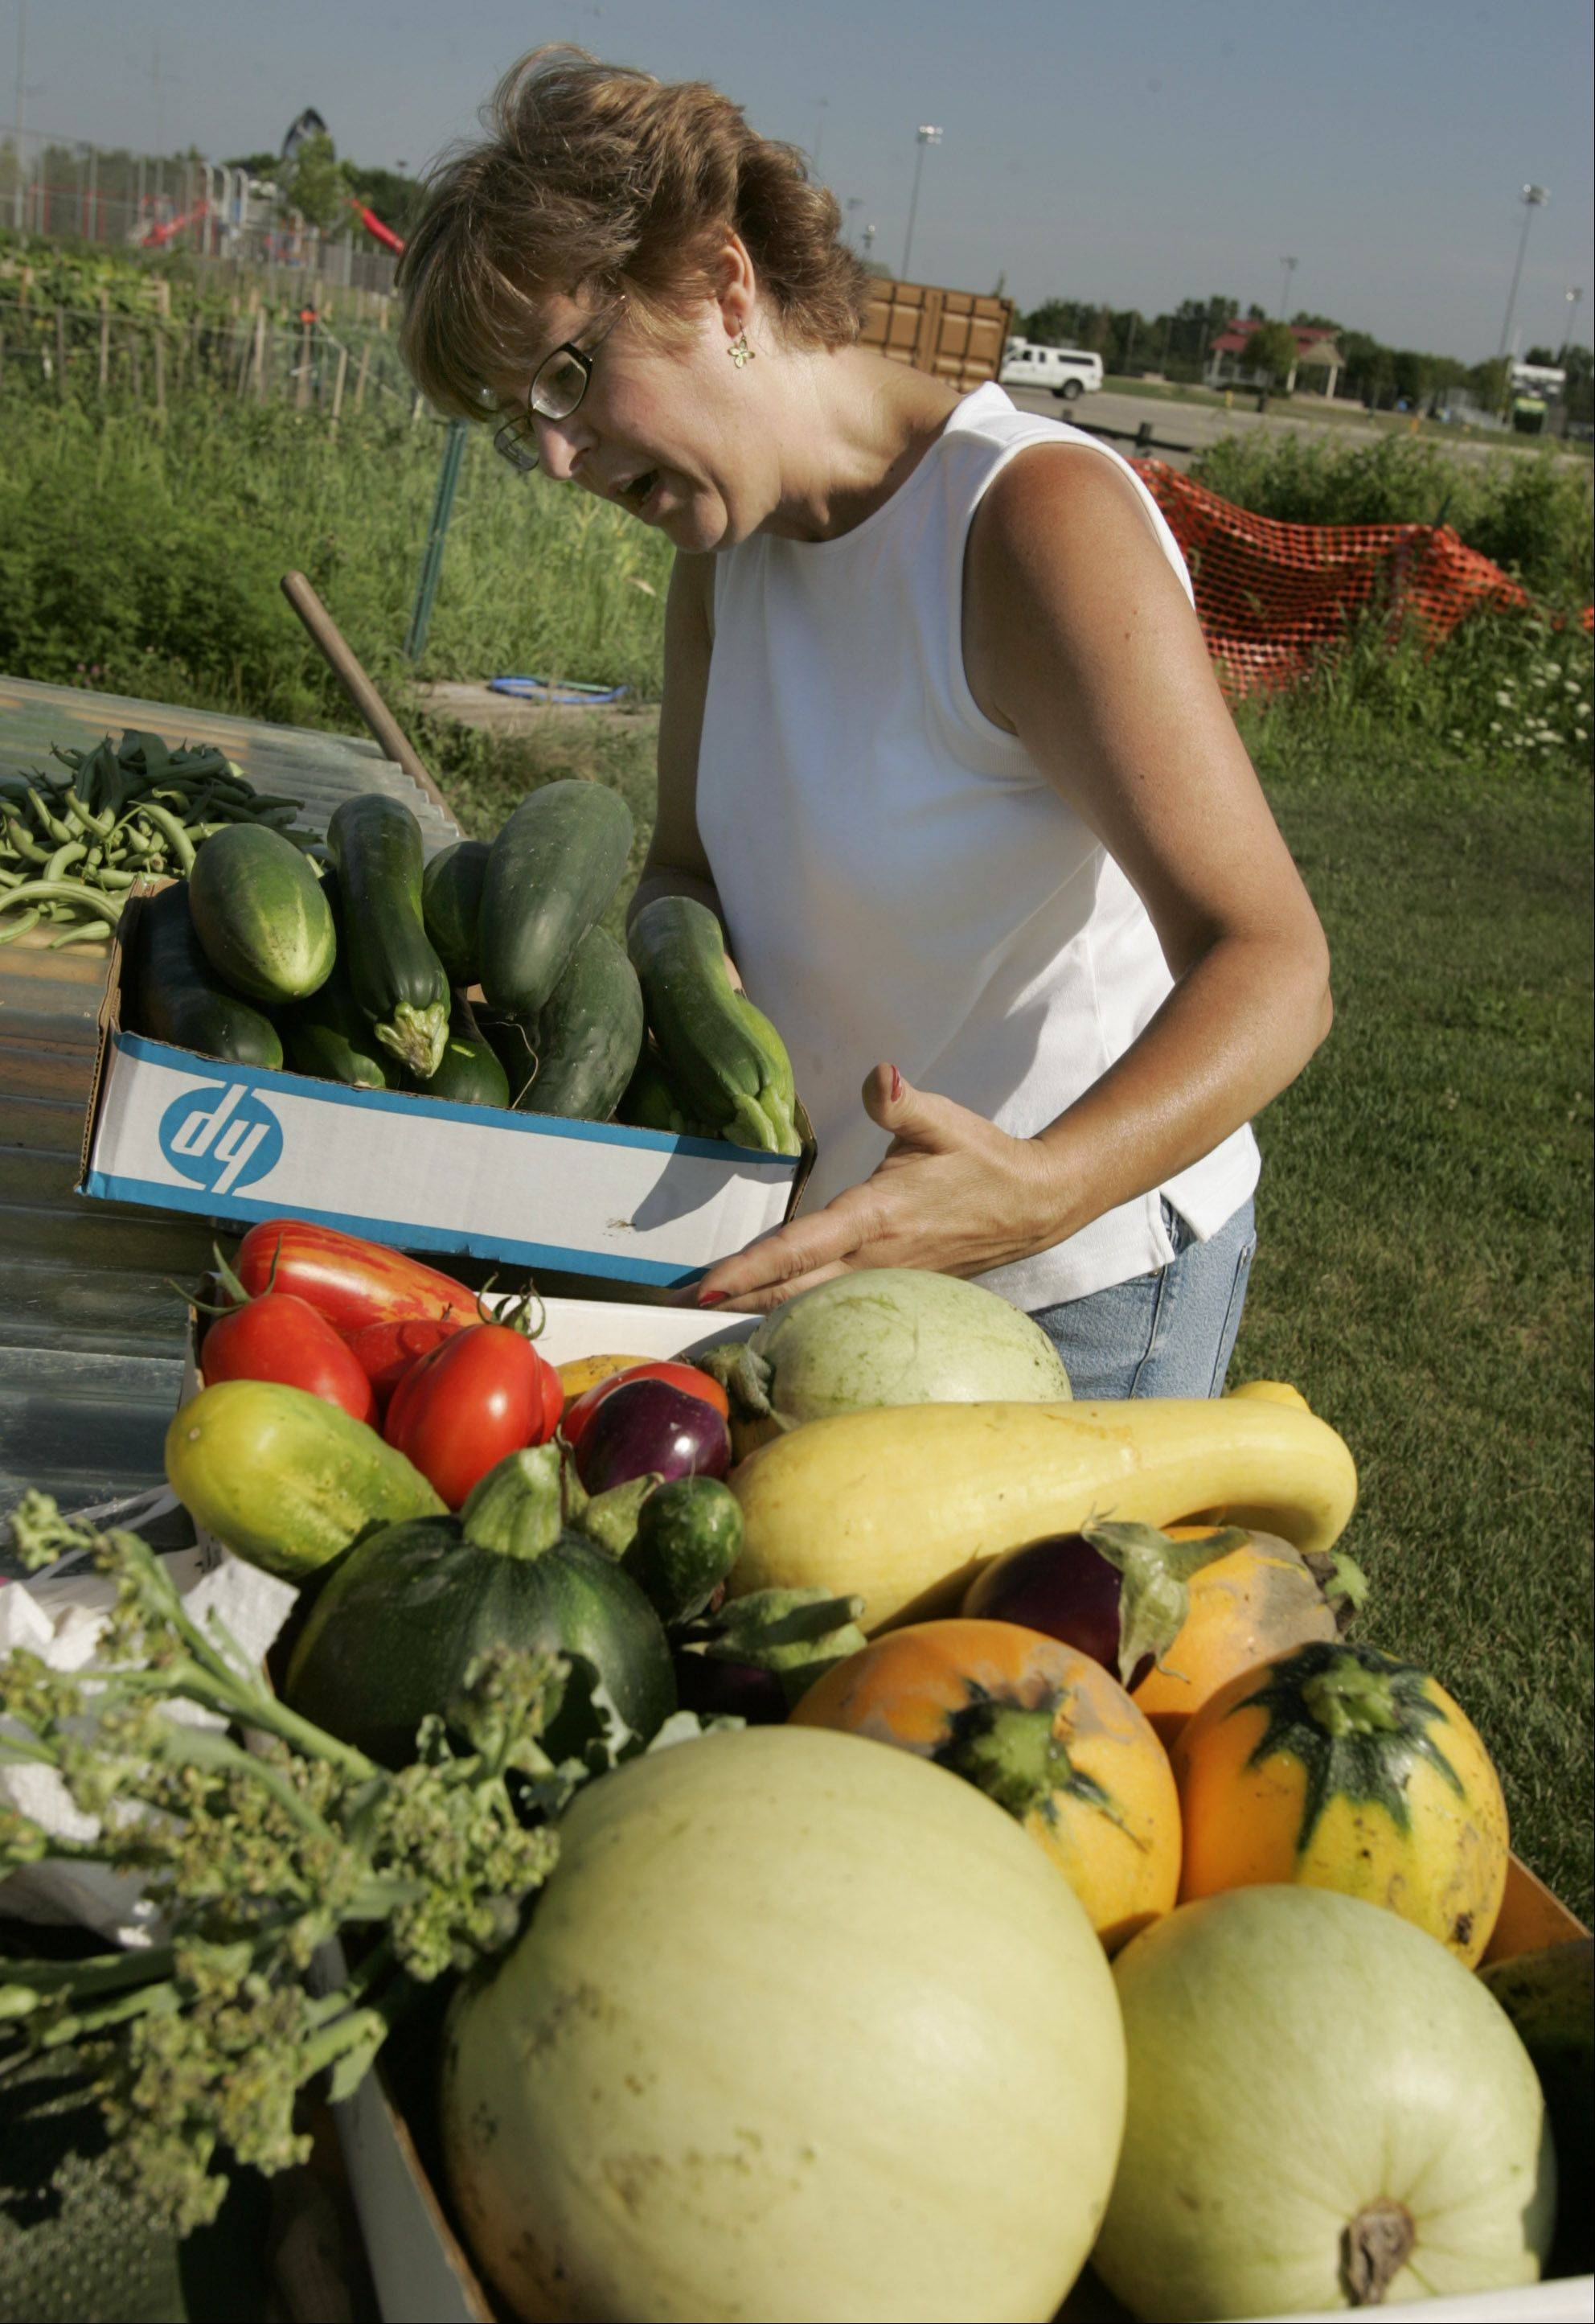 DuPage County Master Gardener Pam Kowalczyk collects produce from a garden for local food pantries. Master Gardeners this year are tending a garden near the Kraft plant in Naperville.